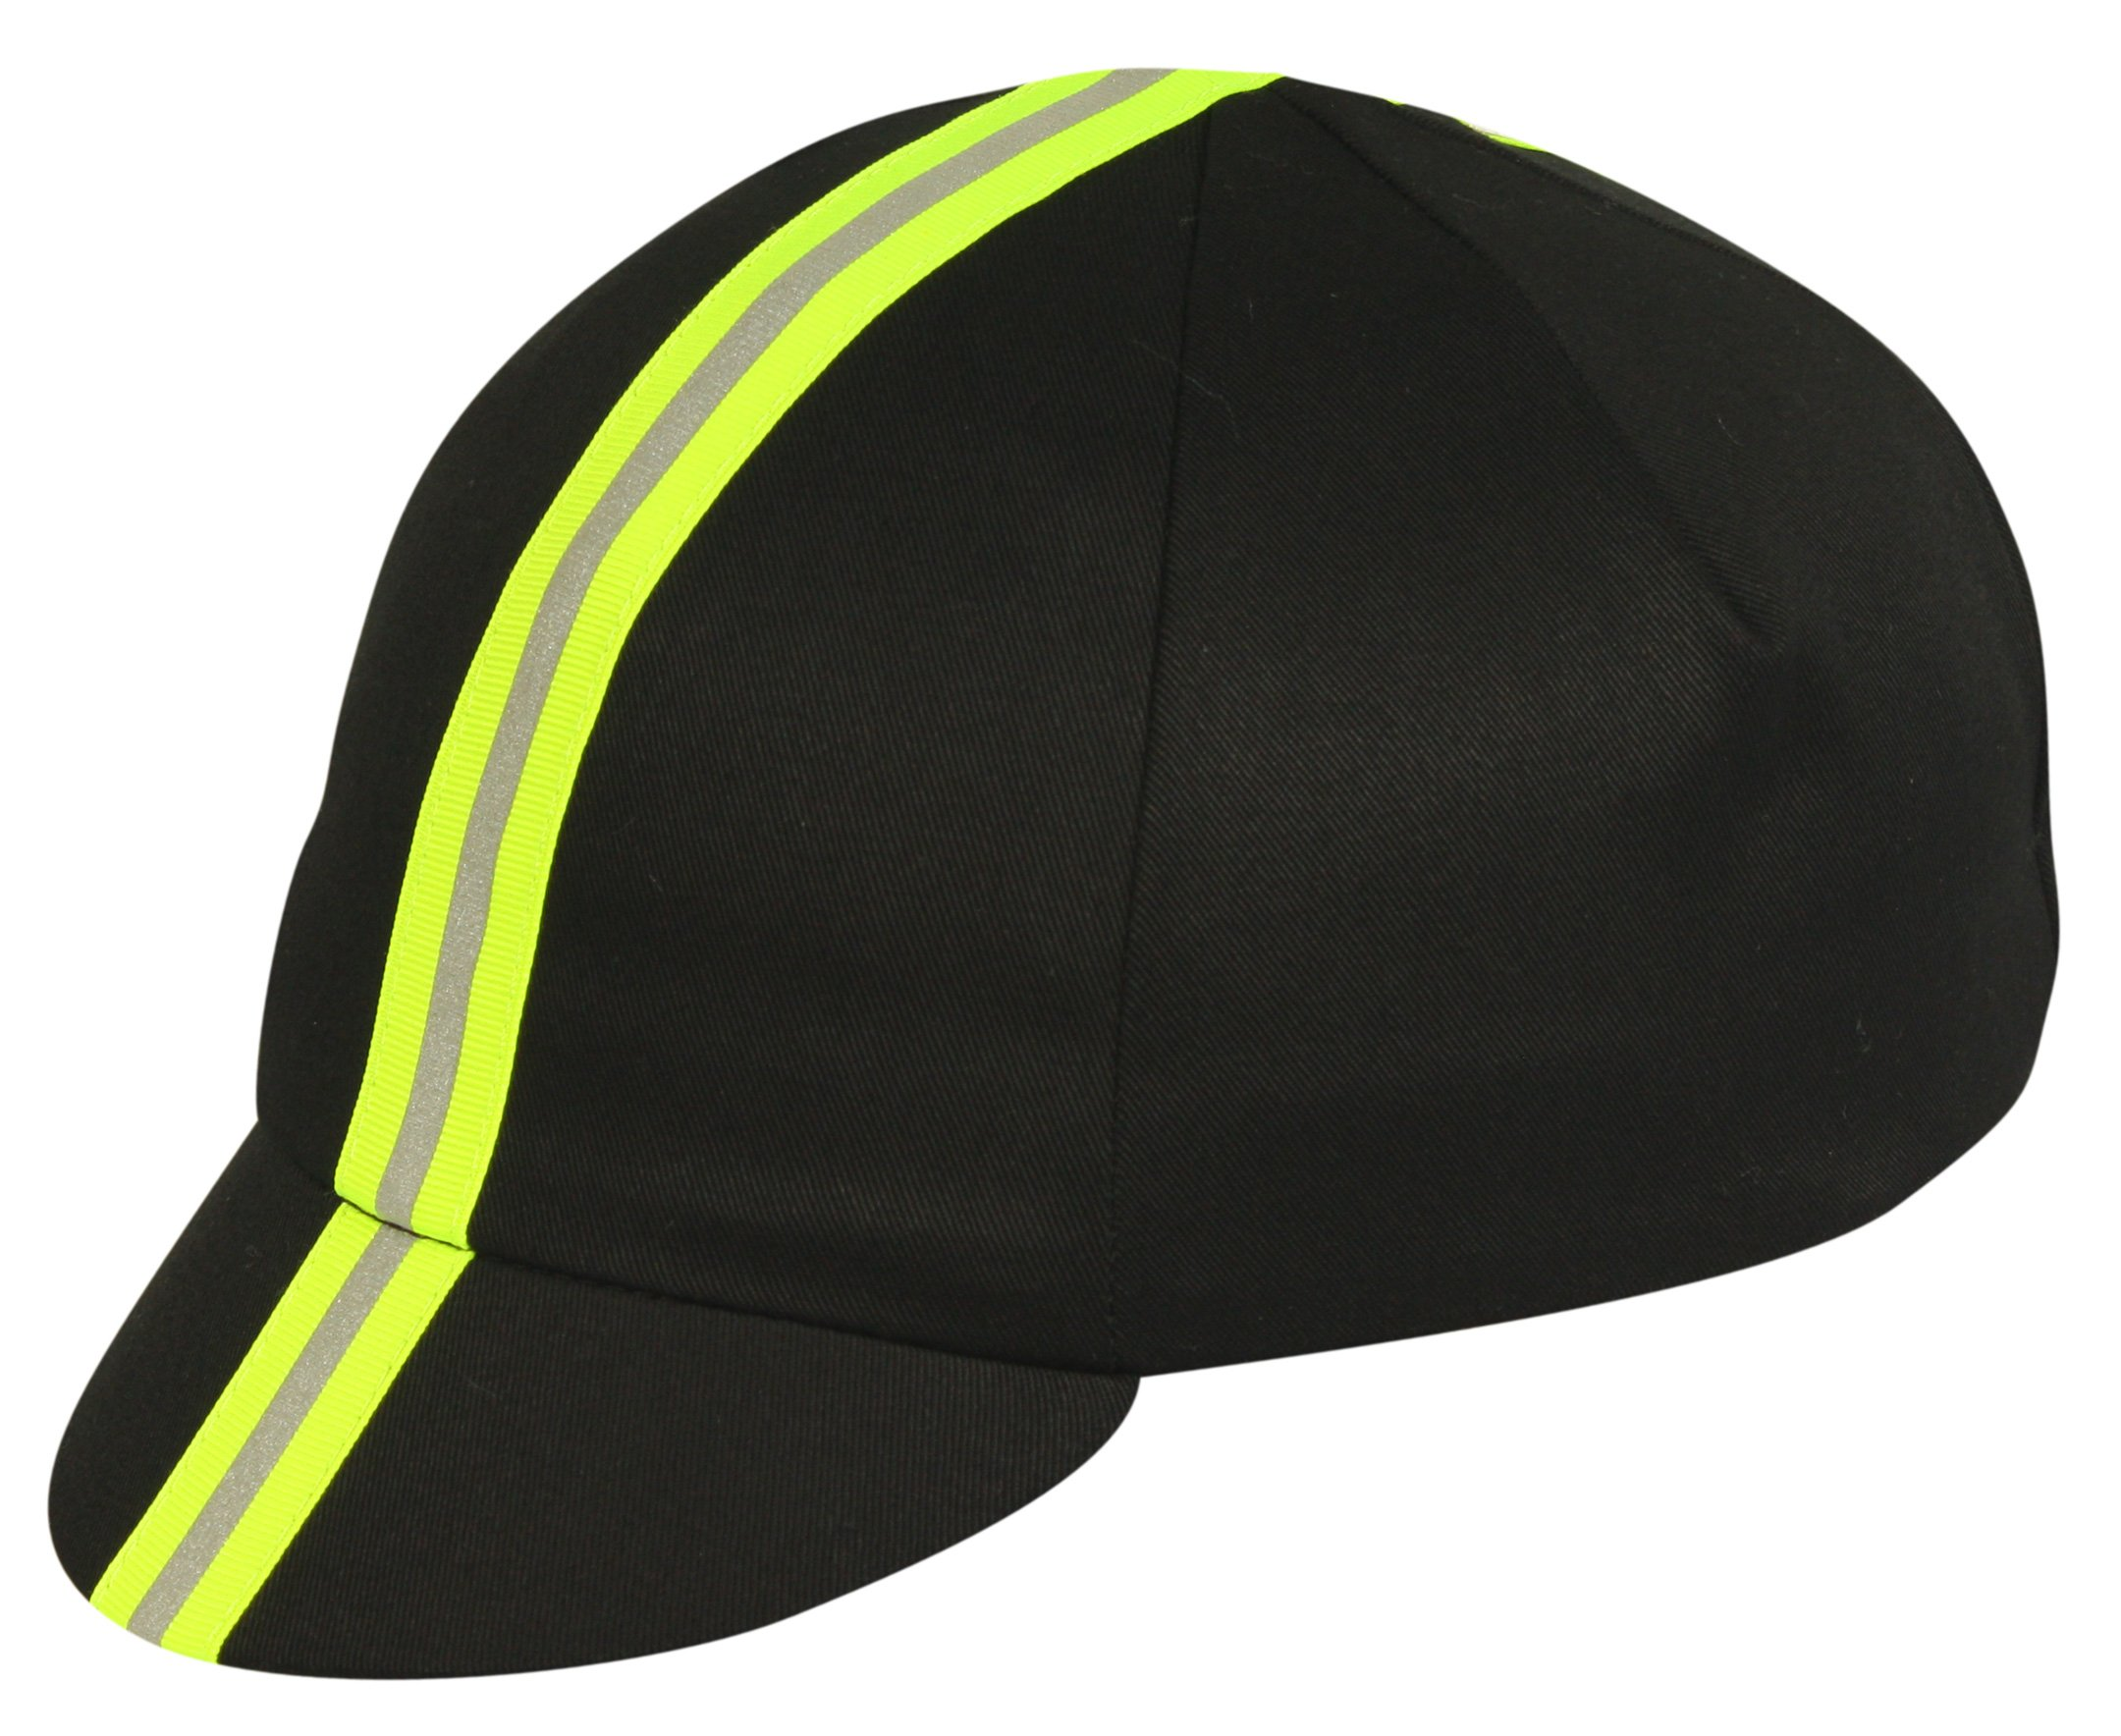 Pace Sportswear Traditional Reflective Cap, Black/Neon Yellow